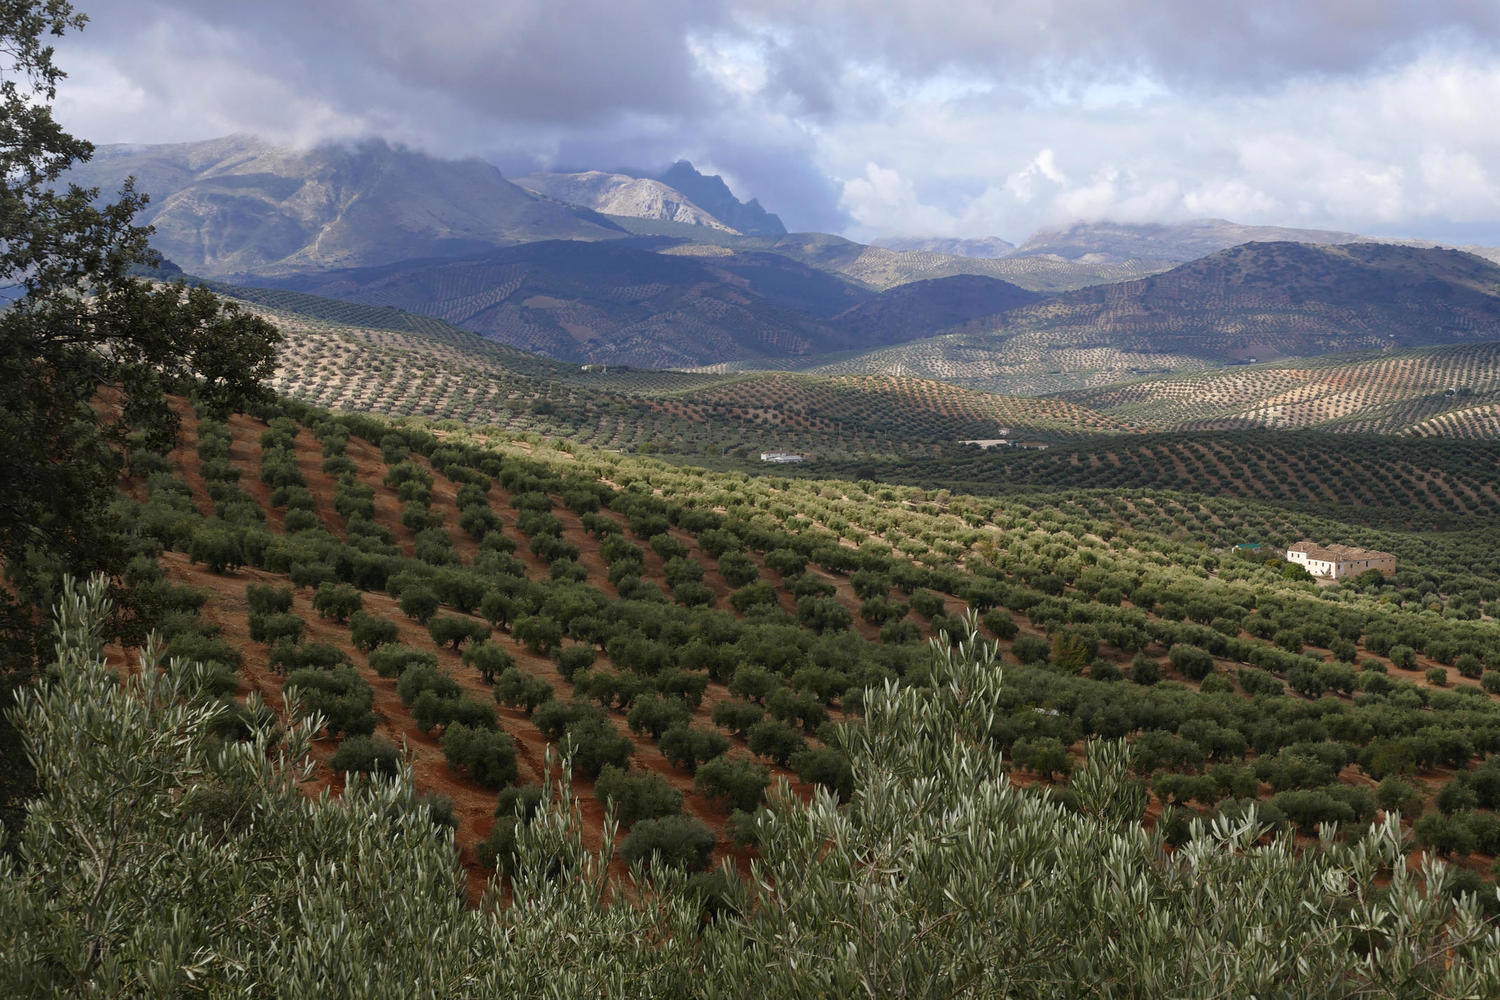 Olive groves and dramatic mountains are a winning combination near Almedinilla